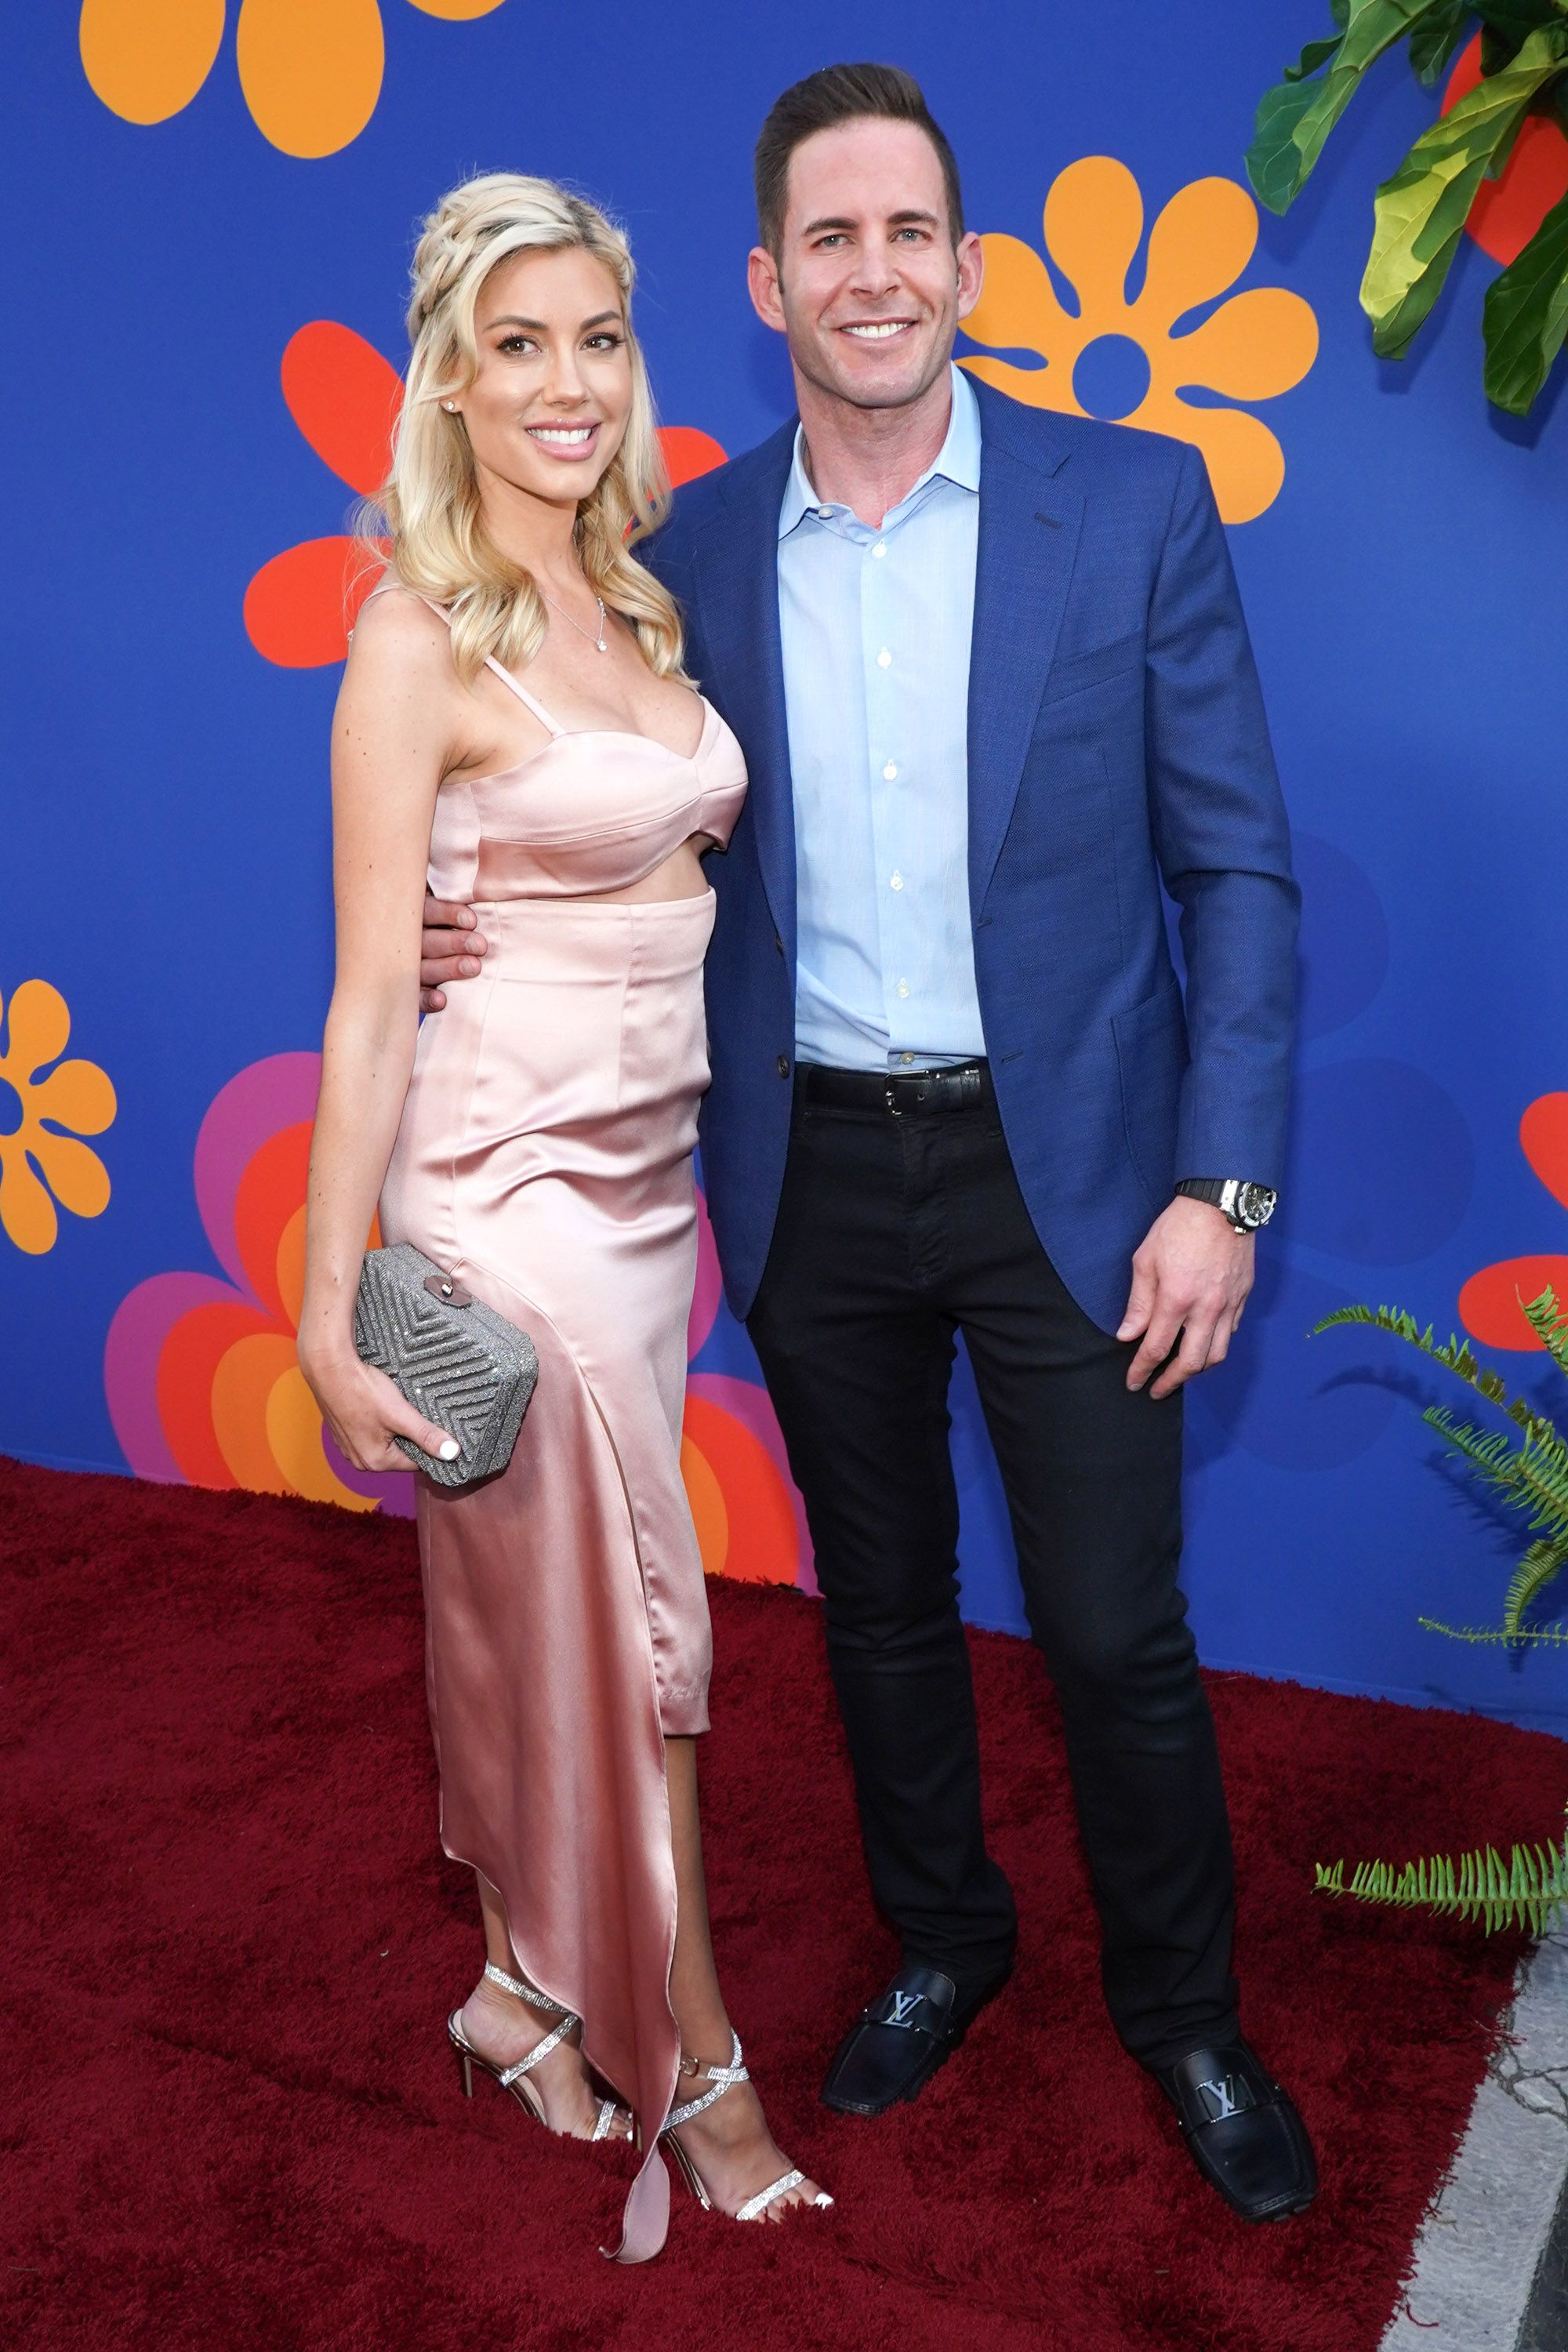 """Tarek El Moussa and Heather Rae Young at the premiere of HGTV's """"A Very Brady Renovation"""" at The Garland Hotel on September 05, 2019 